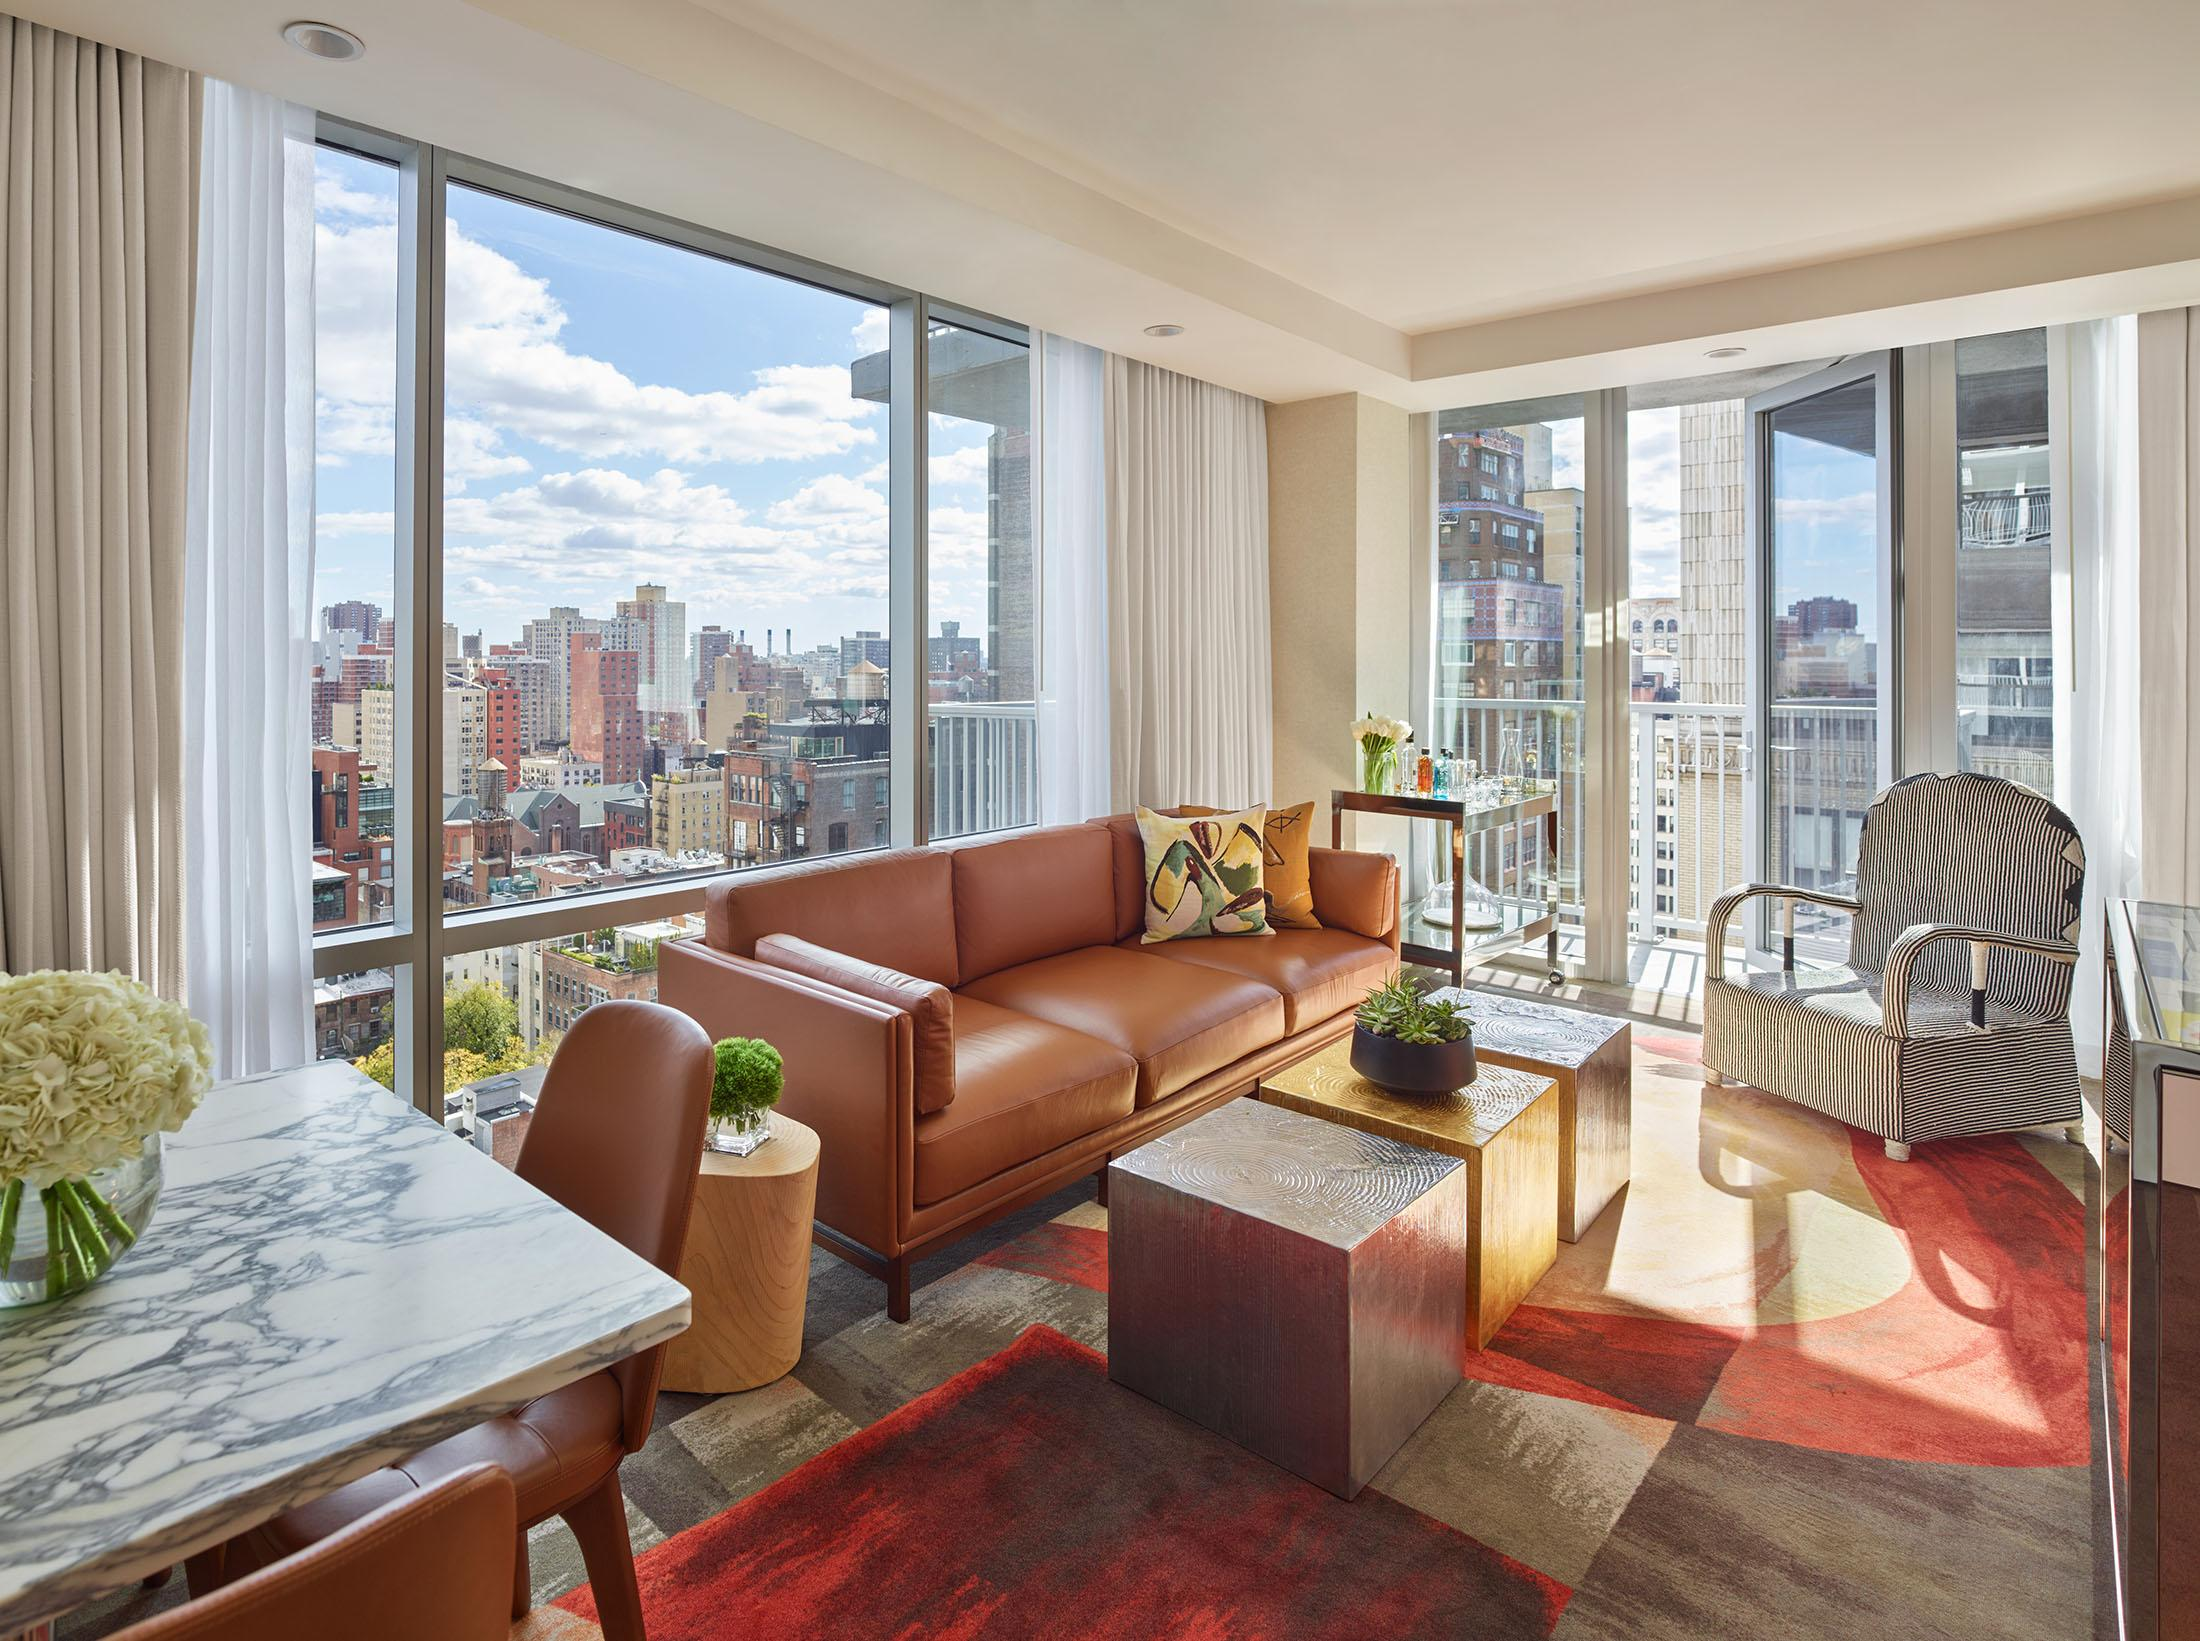 A bright hotel room suite with floor to ceiling windows